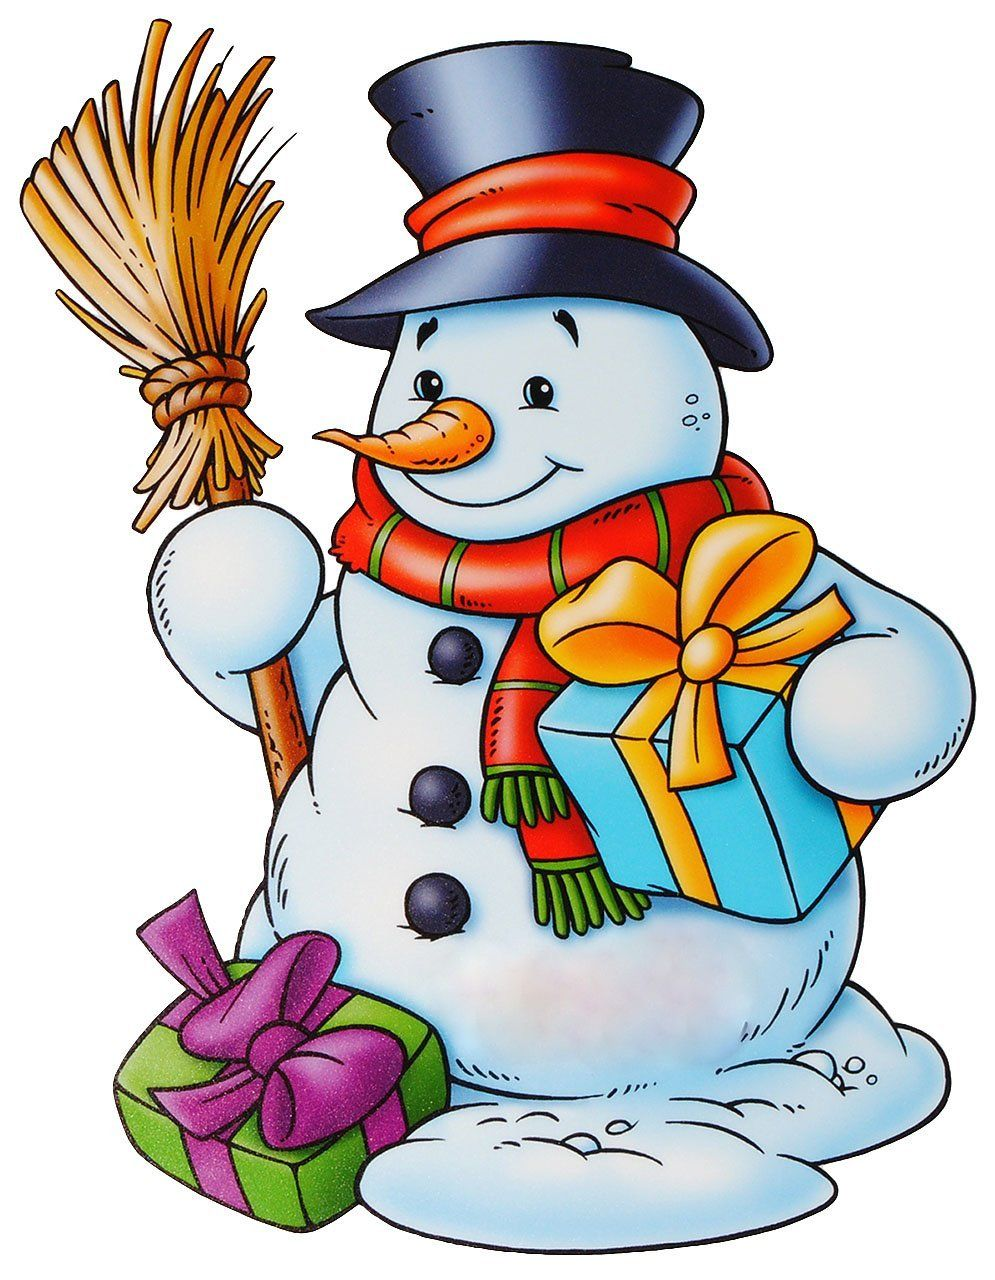 snowmen.quenalbertini Snowman with a broom and gifts (с